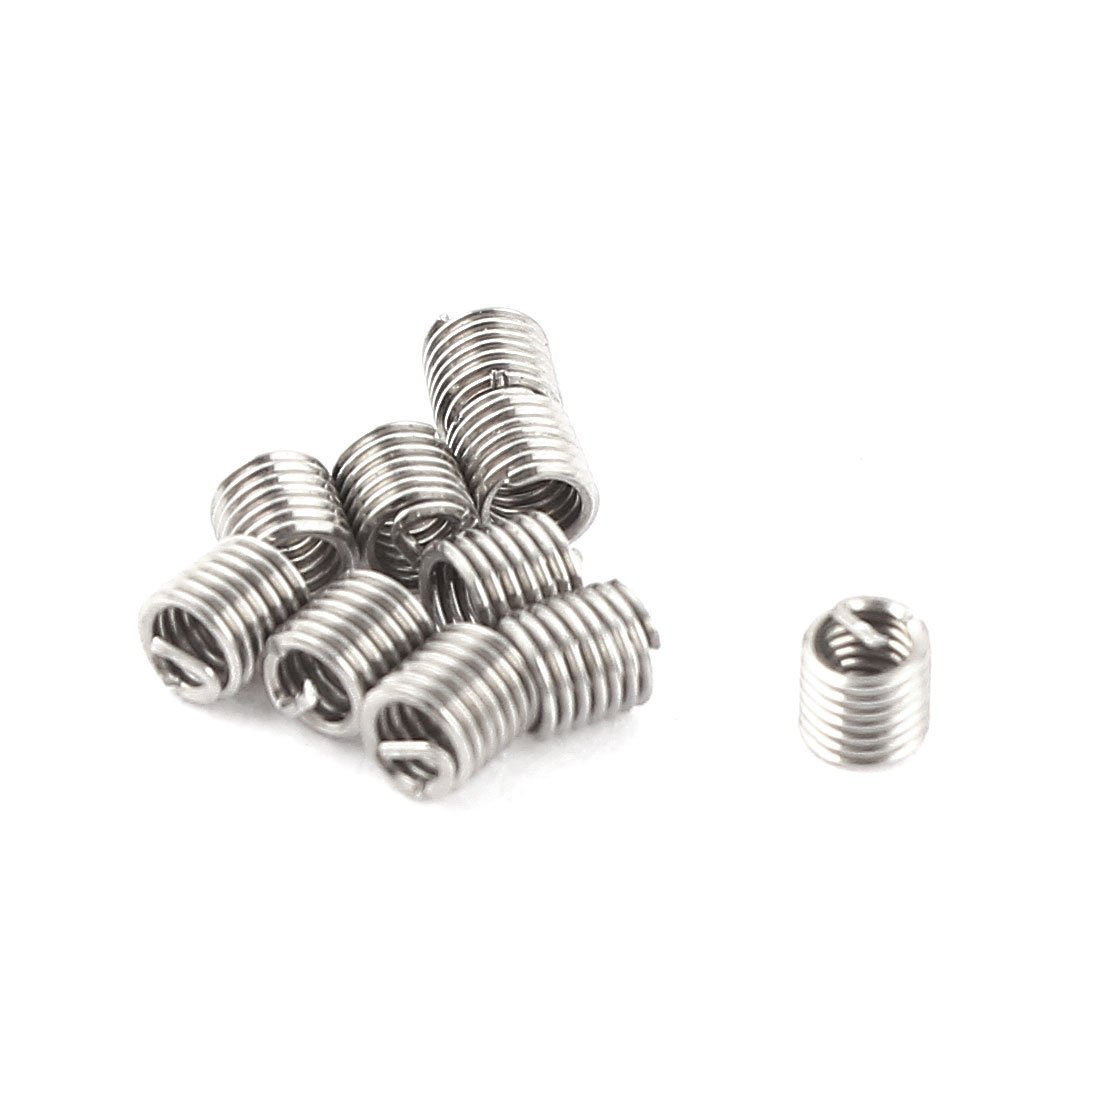 sourcingmap M2 x 0.4mm x 2D V-Coil Wire Helicoil Thread Repair Inserts 10Pcs a15061000ux0394